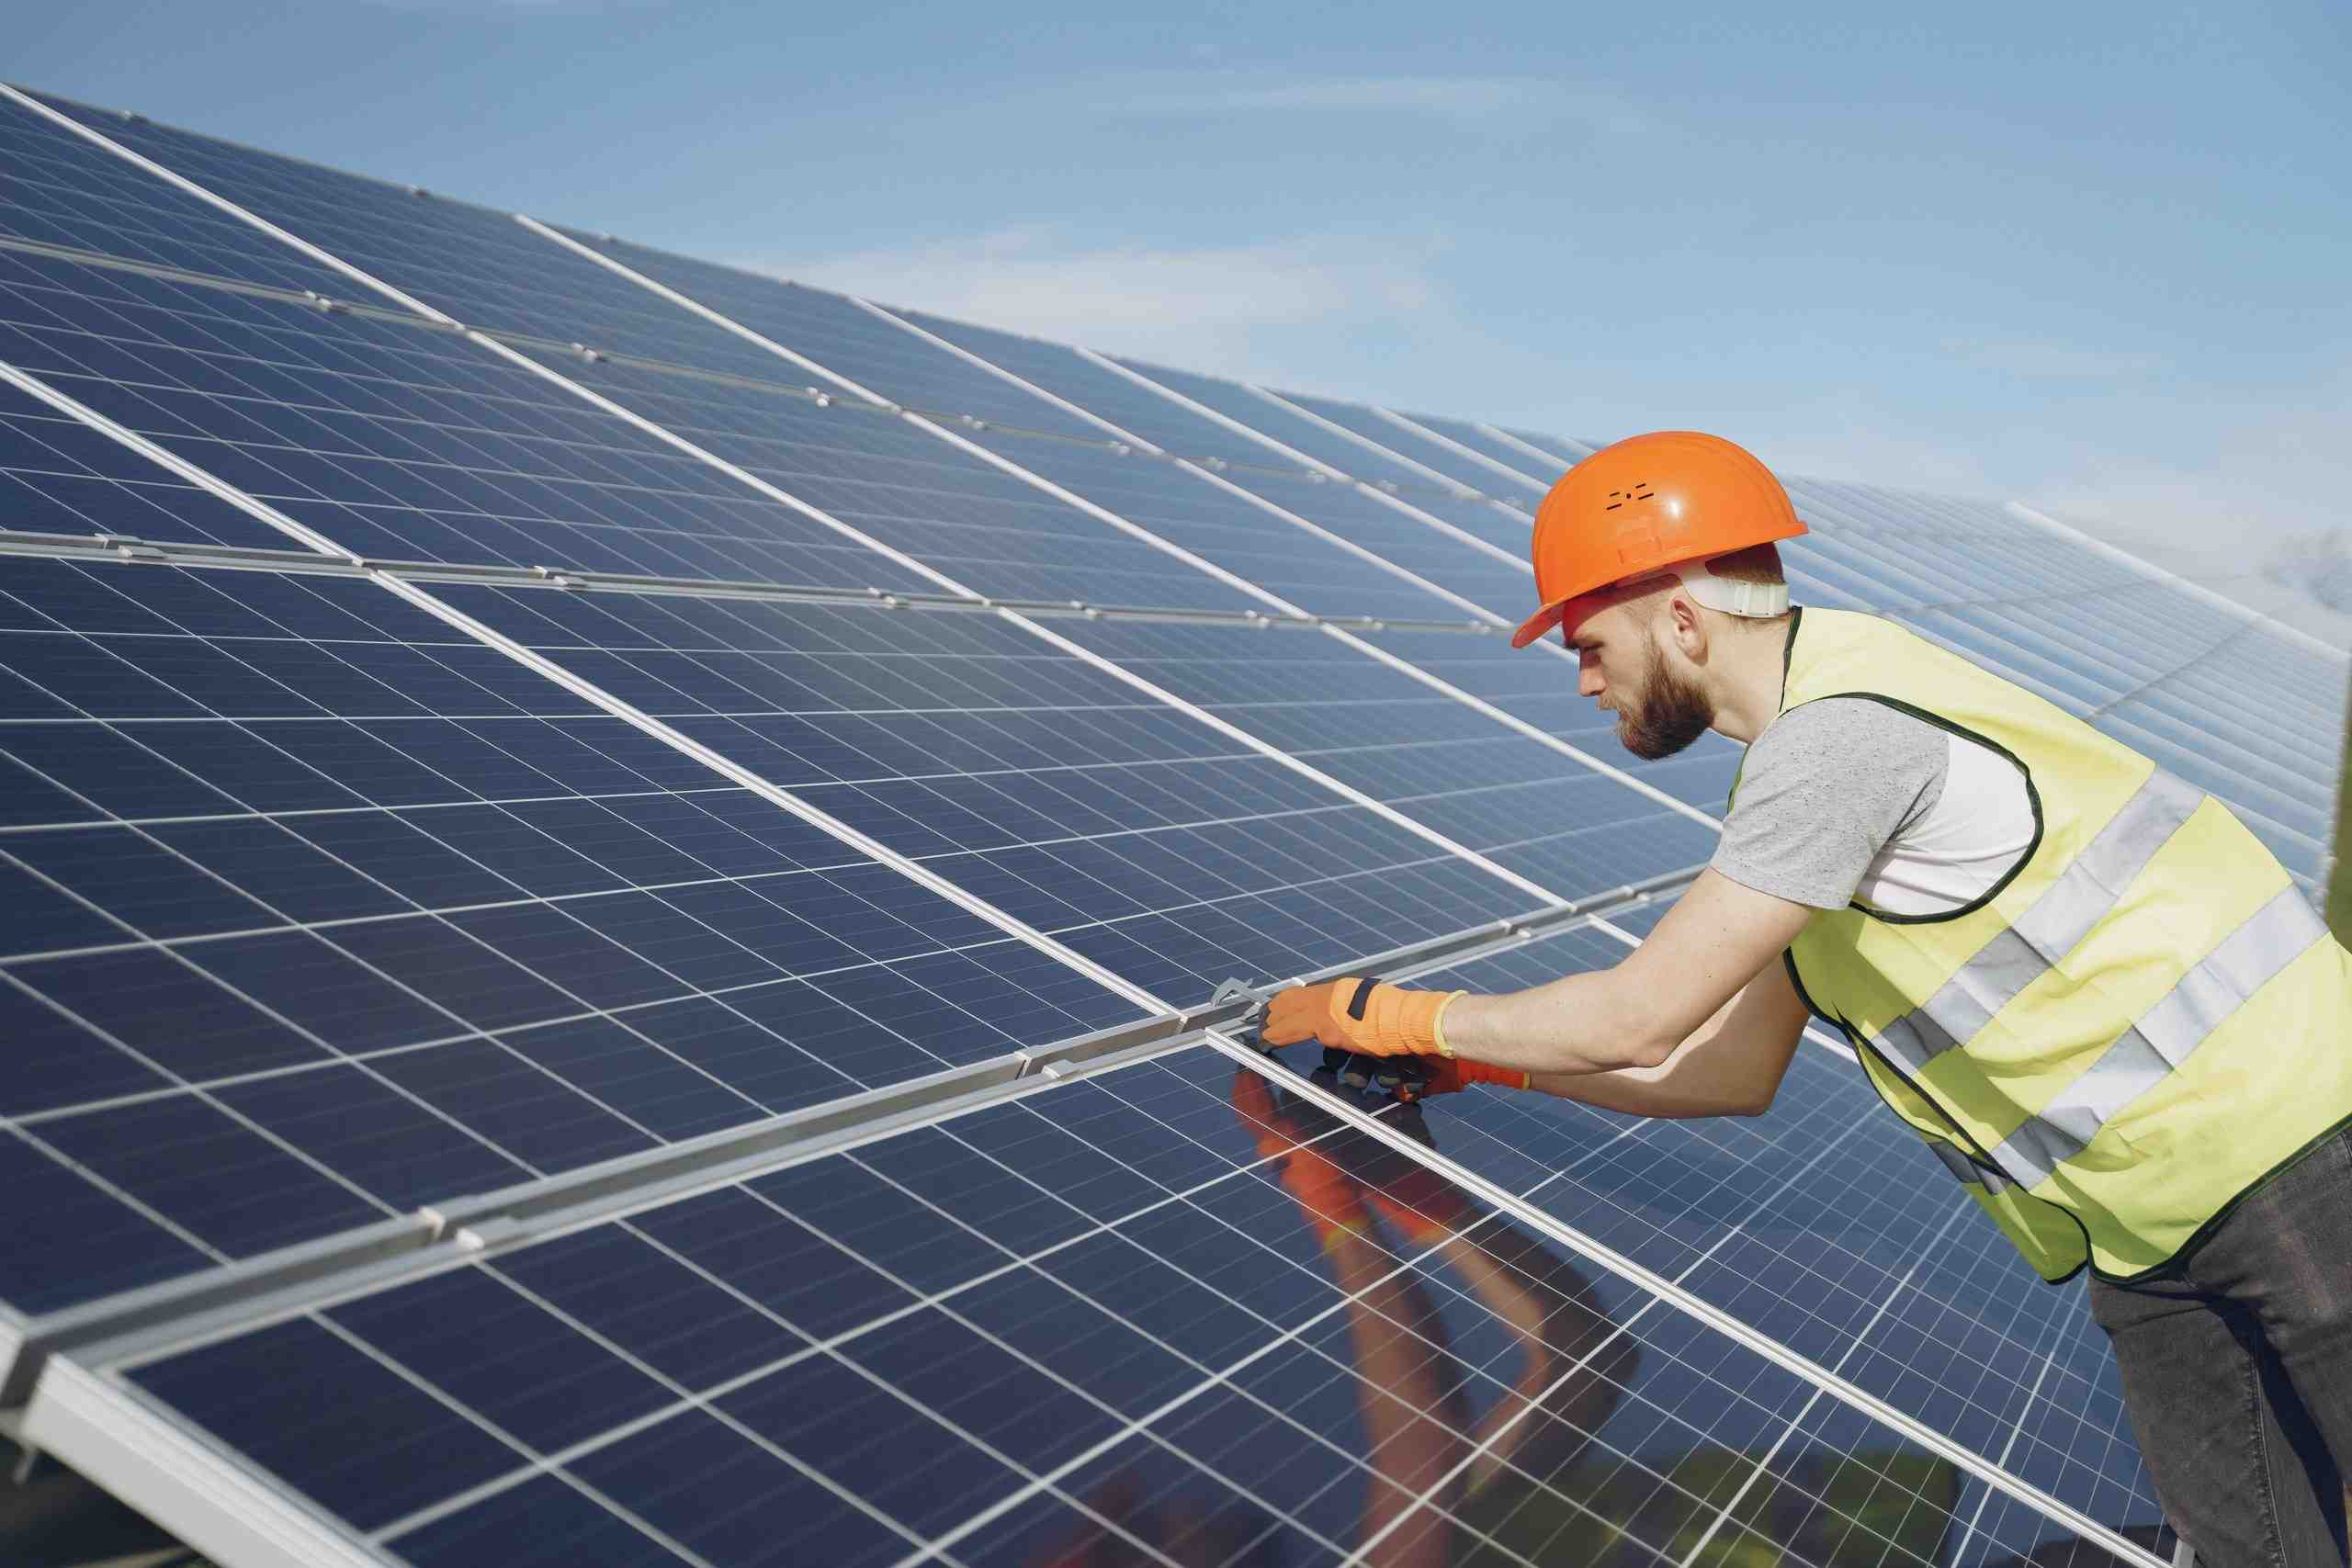 How much does Tesla solar installation cost?